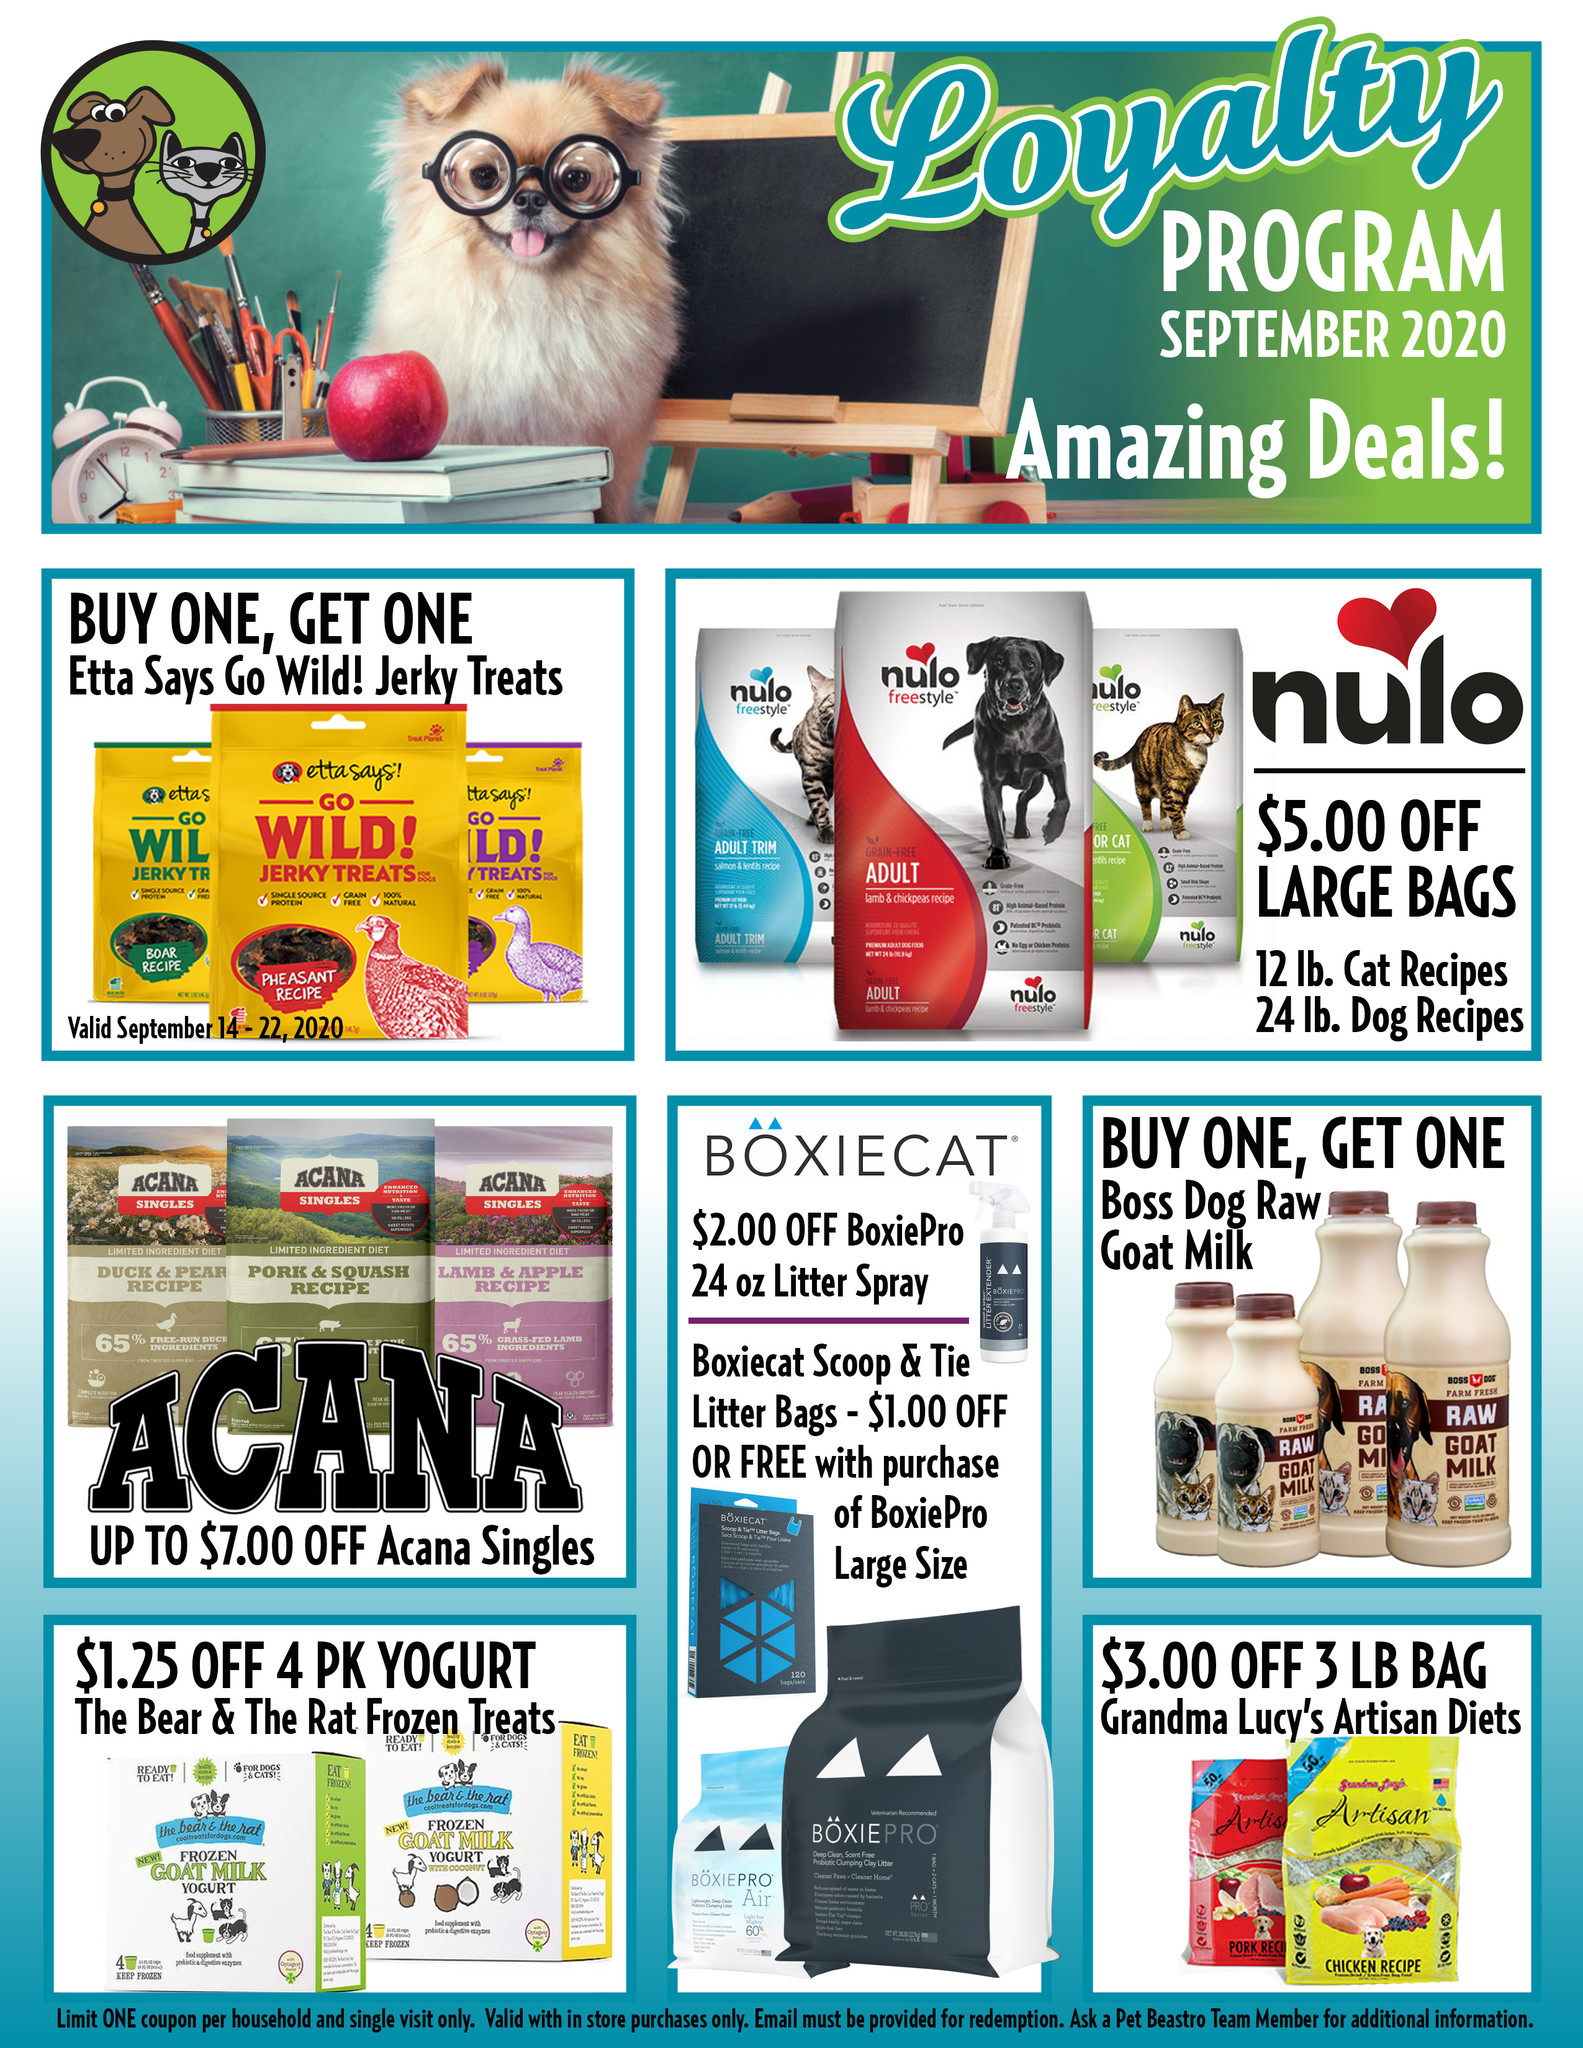 September Loyalty Program Specials For Cats & Dogs Are Here!